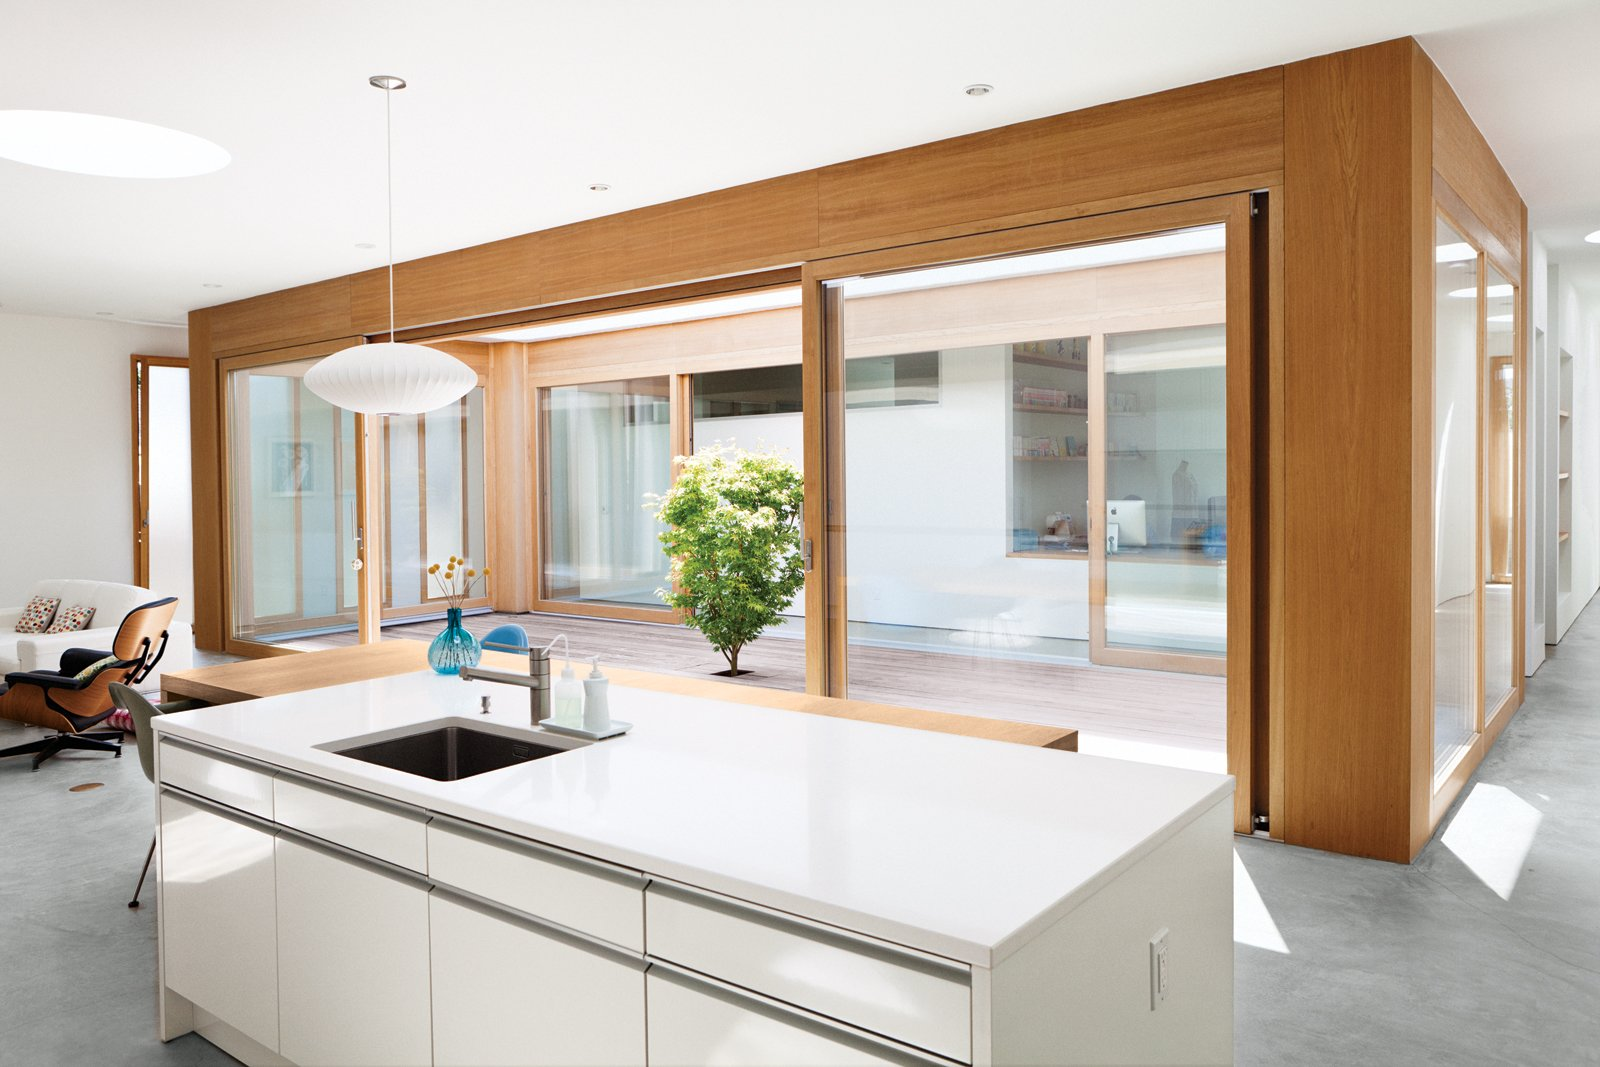 Kitchen, White Cabinet, Concrete Floor, Pendant Lighting, and Undermount Sink For Paul and Shoko Shozi, a pair of retiring Angelenos, the goal was to shut out the neighborhood but bring in the sunny skies. Their new prefab home, the Tatami House, designed by Swiss architect Roger Kurath of Design*21, makes a central courtyard the physical, and maybe even the spiritual, center of the home. Because the Japanese maple in the courtyard had to be planted before the ipe deck was laid, Kurath designed a small removable panel to allow access to the tree's base. The Shozis can pull up the bit of decking to tend to the tree and replace it when they're through. And because the boards line up perfectly, only the gardener need know it's there. From the kitchen and living room you're well connected to the courtyard and the rest of the house.   Photo 1 of 19 in Looking Inward